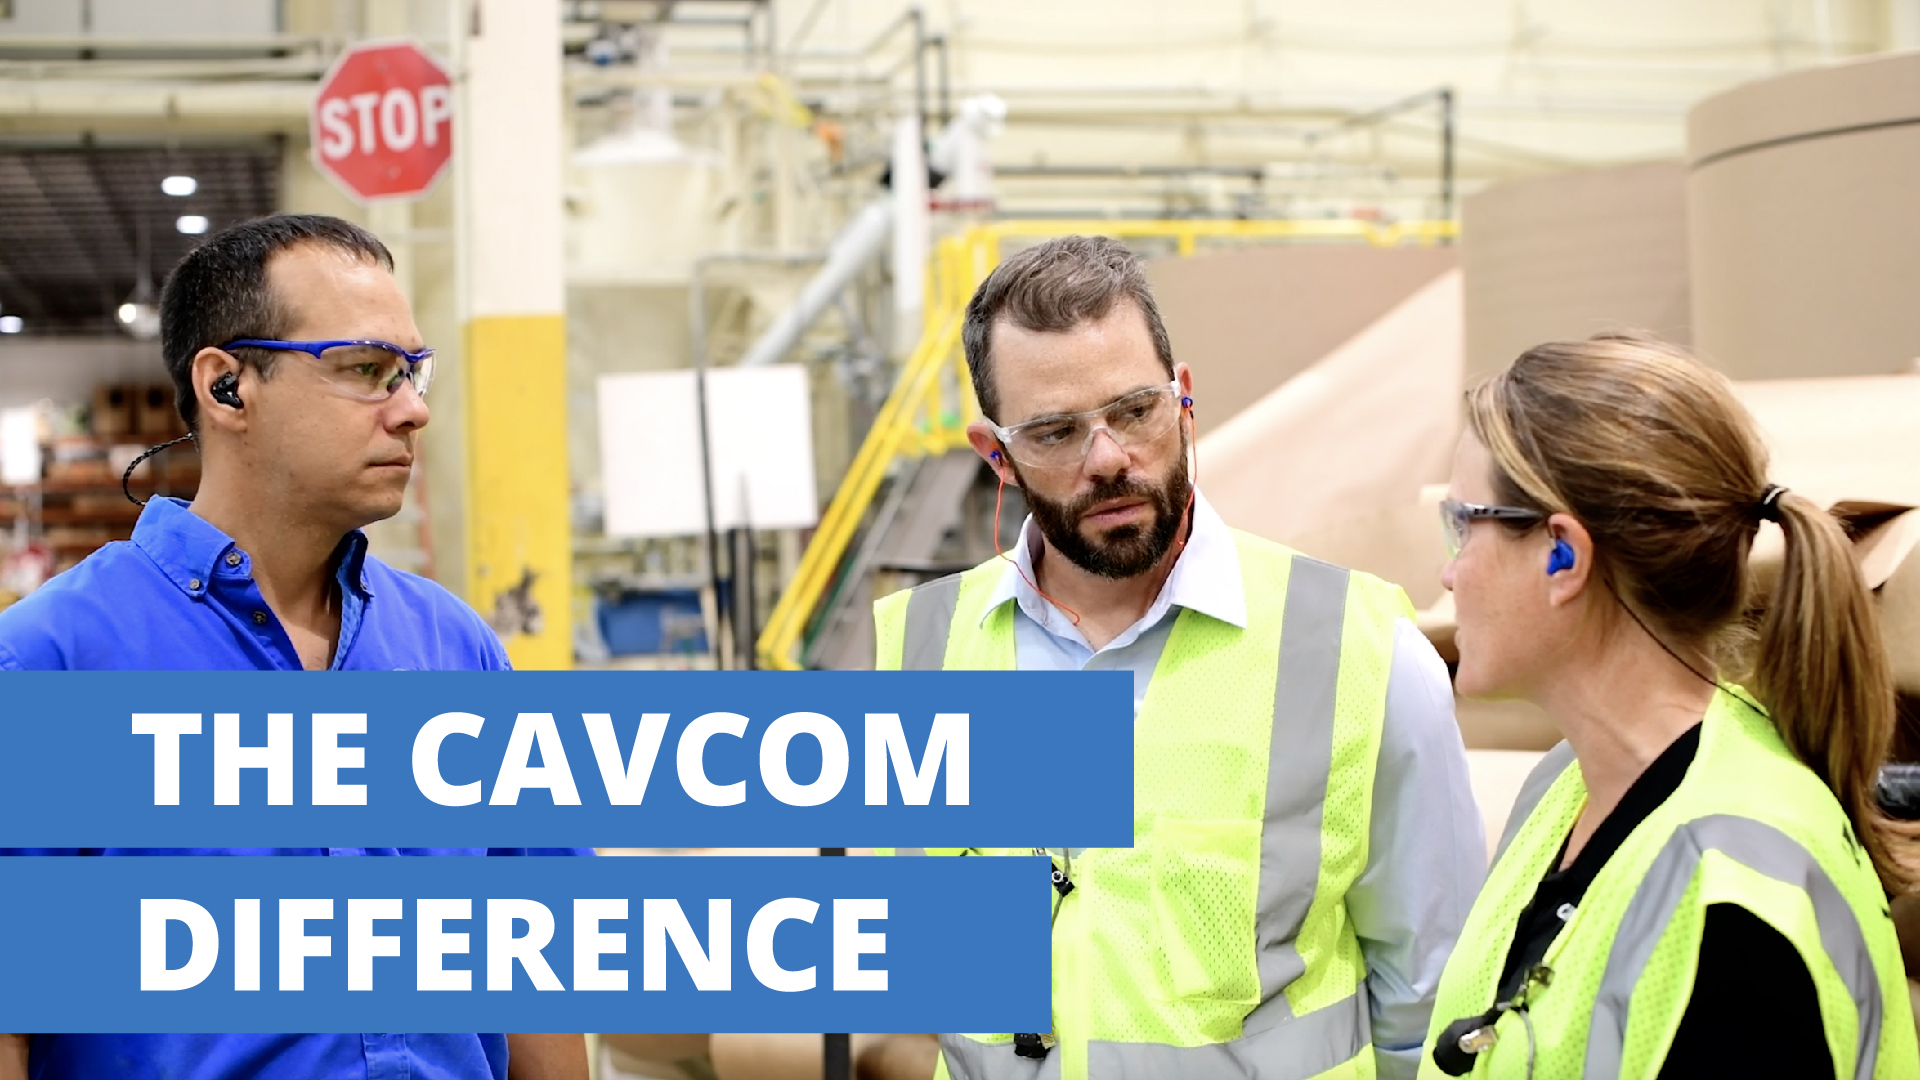 CavCom-About-Video-09-30-19